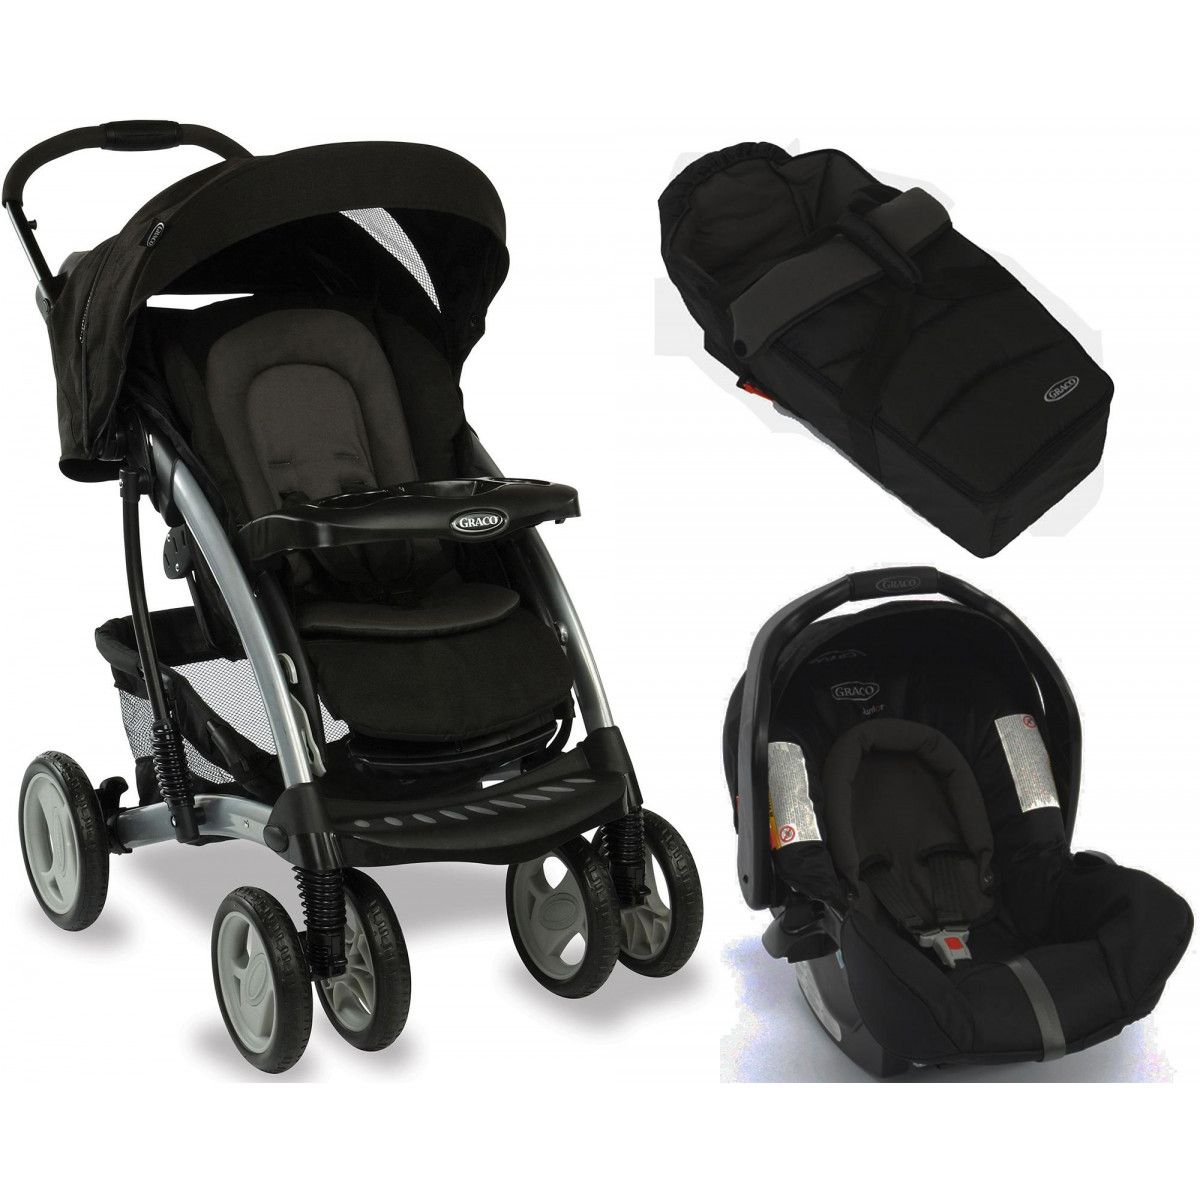 Graco Quattro Tour Deluxe Travel System Oxford Travel Systems